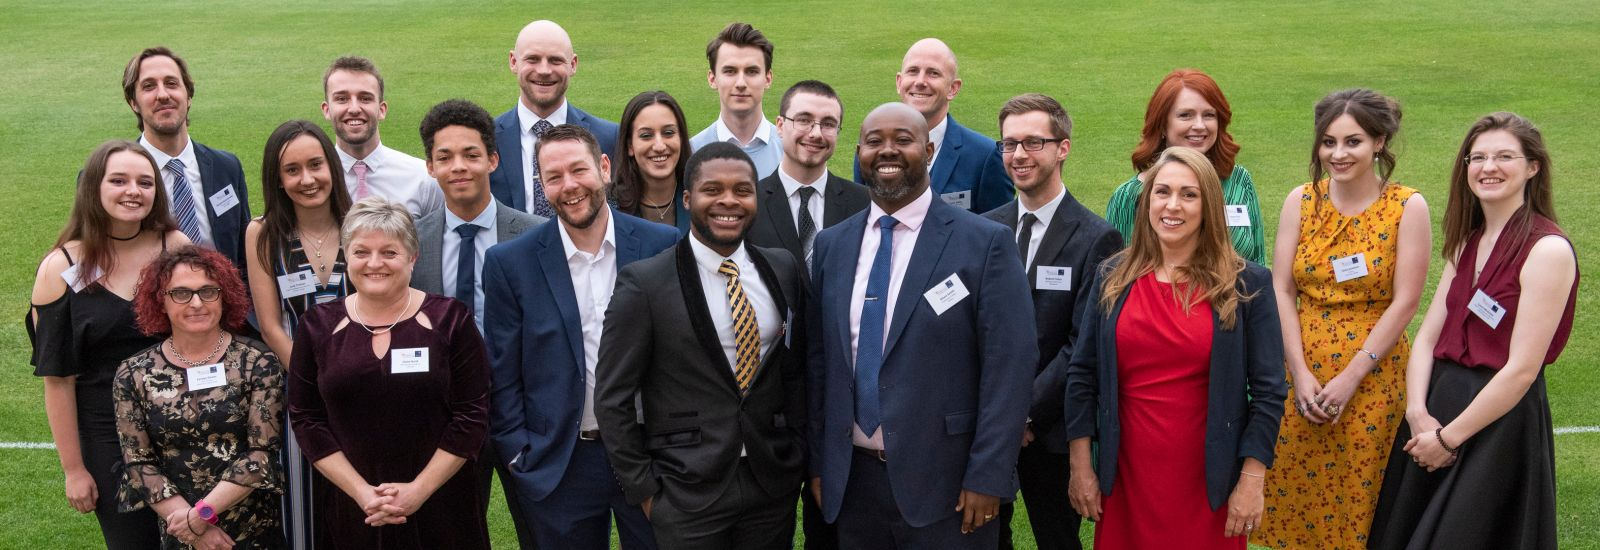 Oxford University Inspirational Teacher Awards 2019